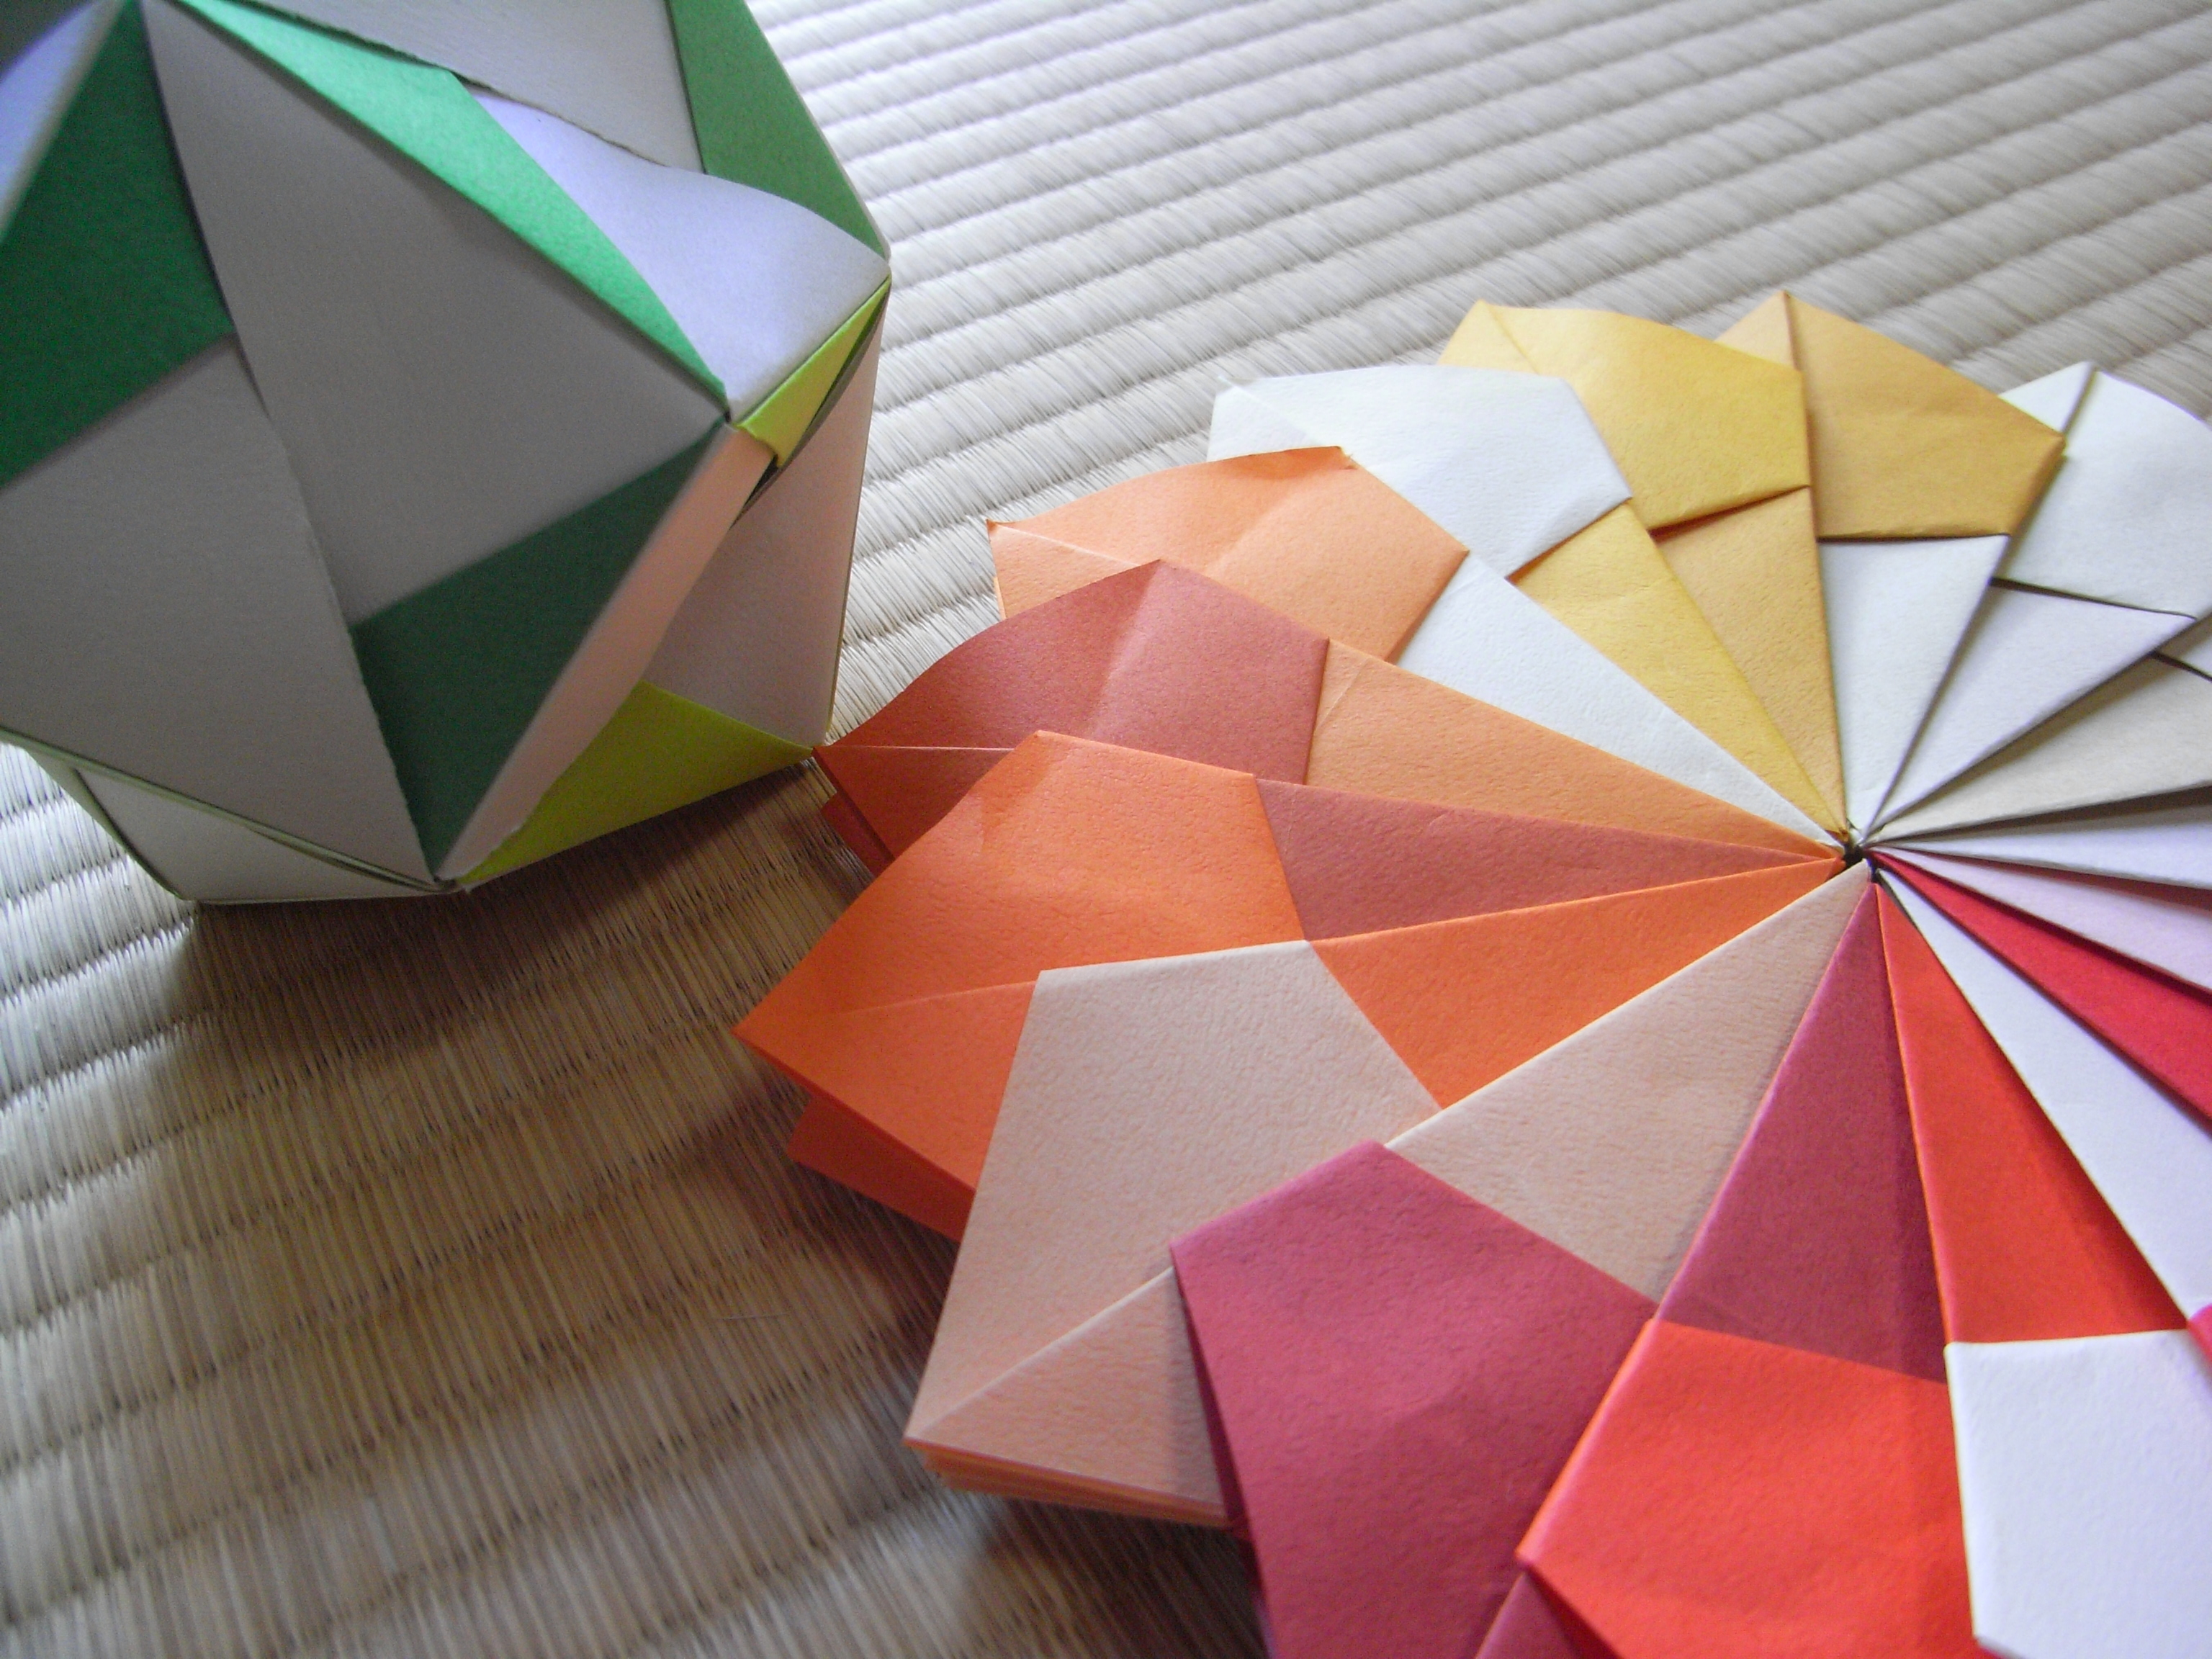 File image 2d and 3d modulor - Origami origami origami ...